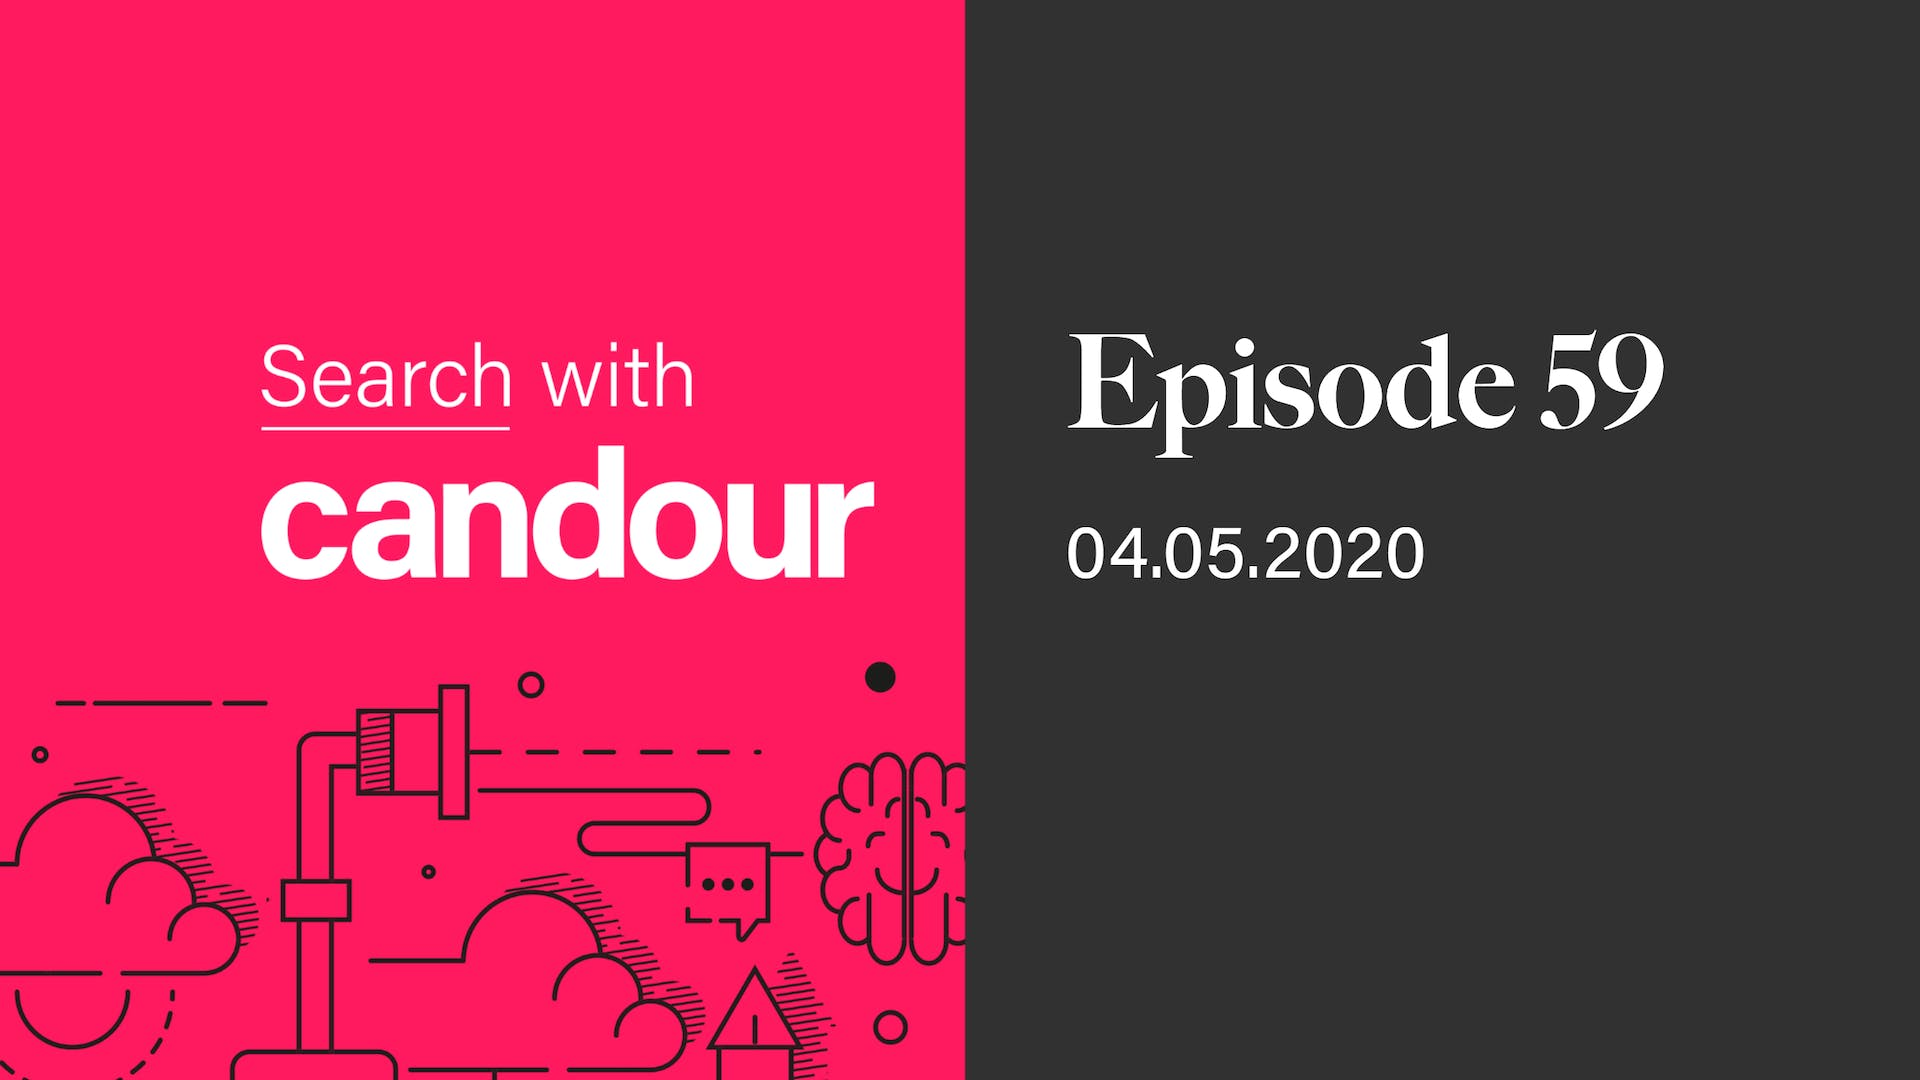 Episode 59 - Search with Candour